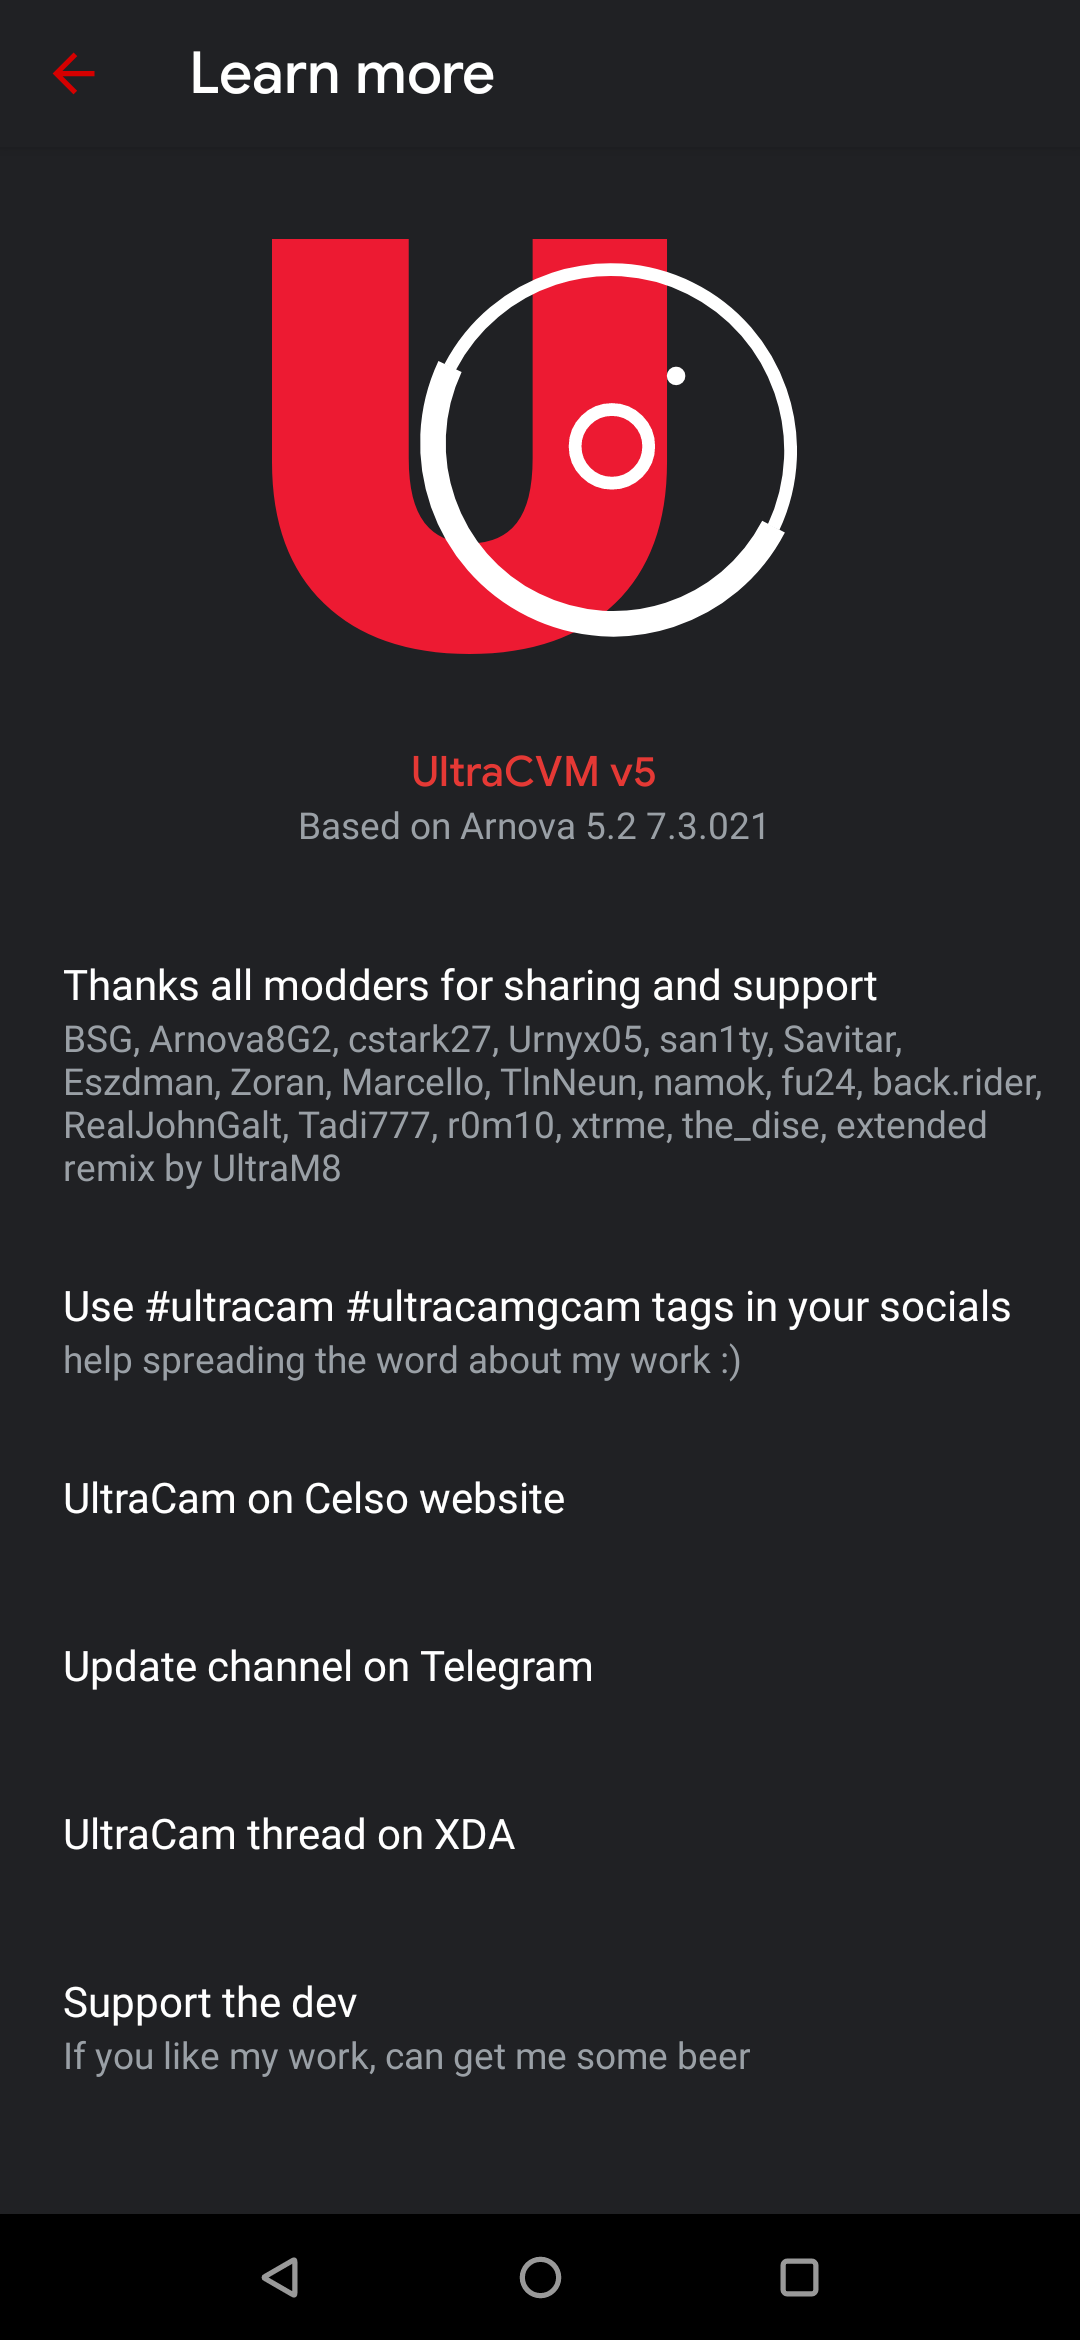 UltraCVM_v5